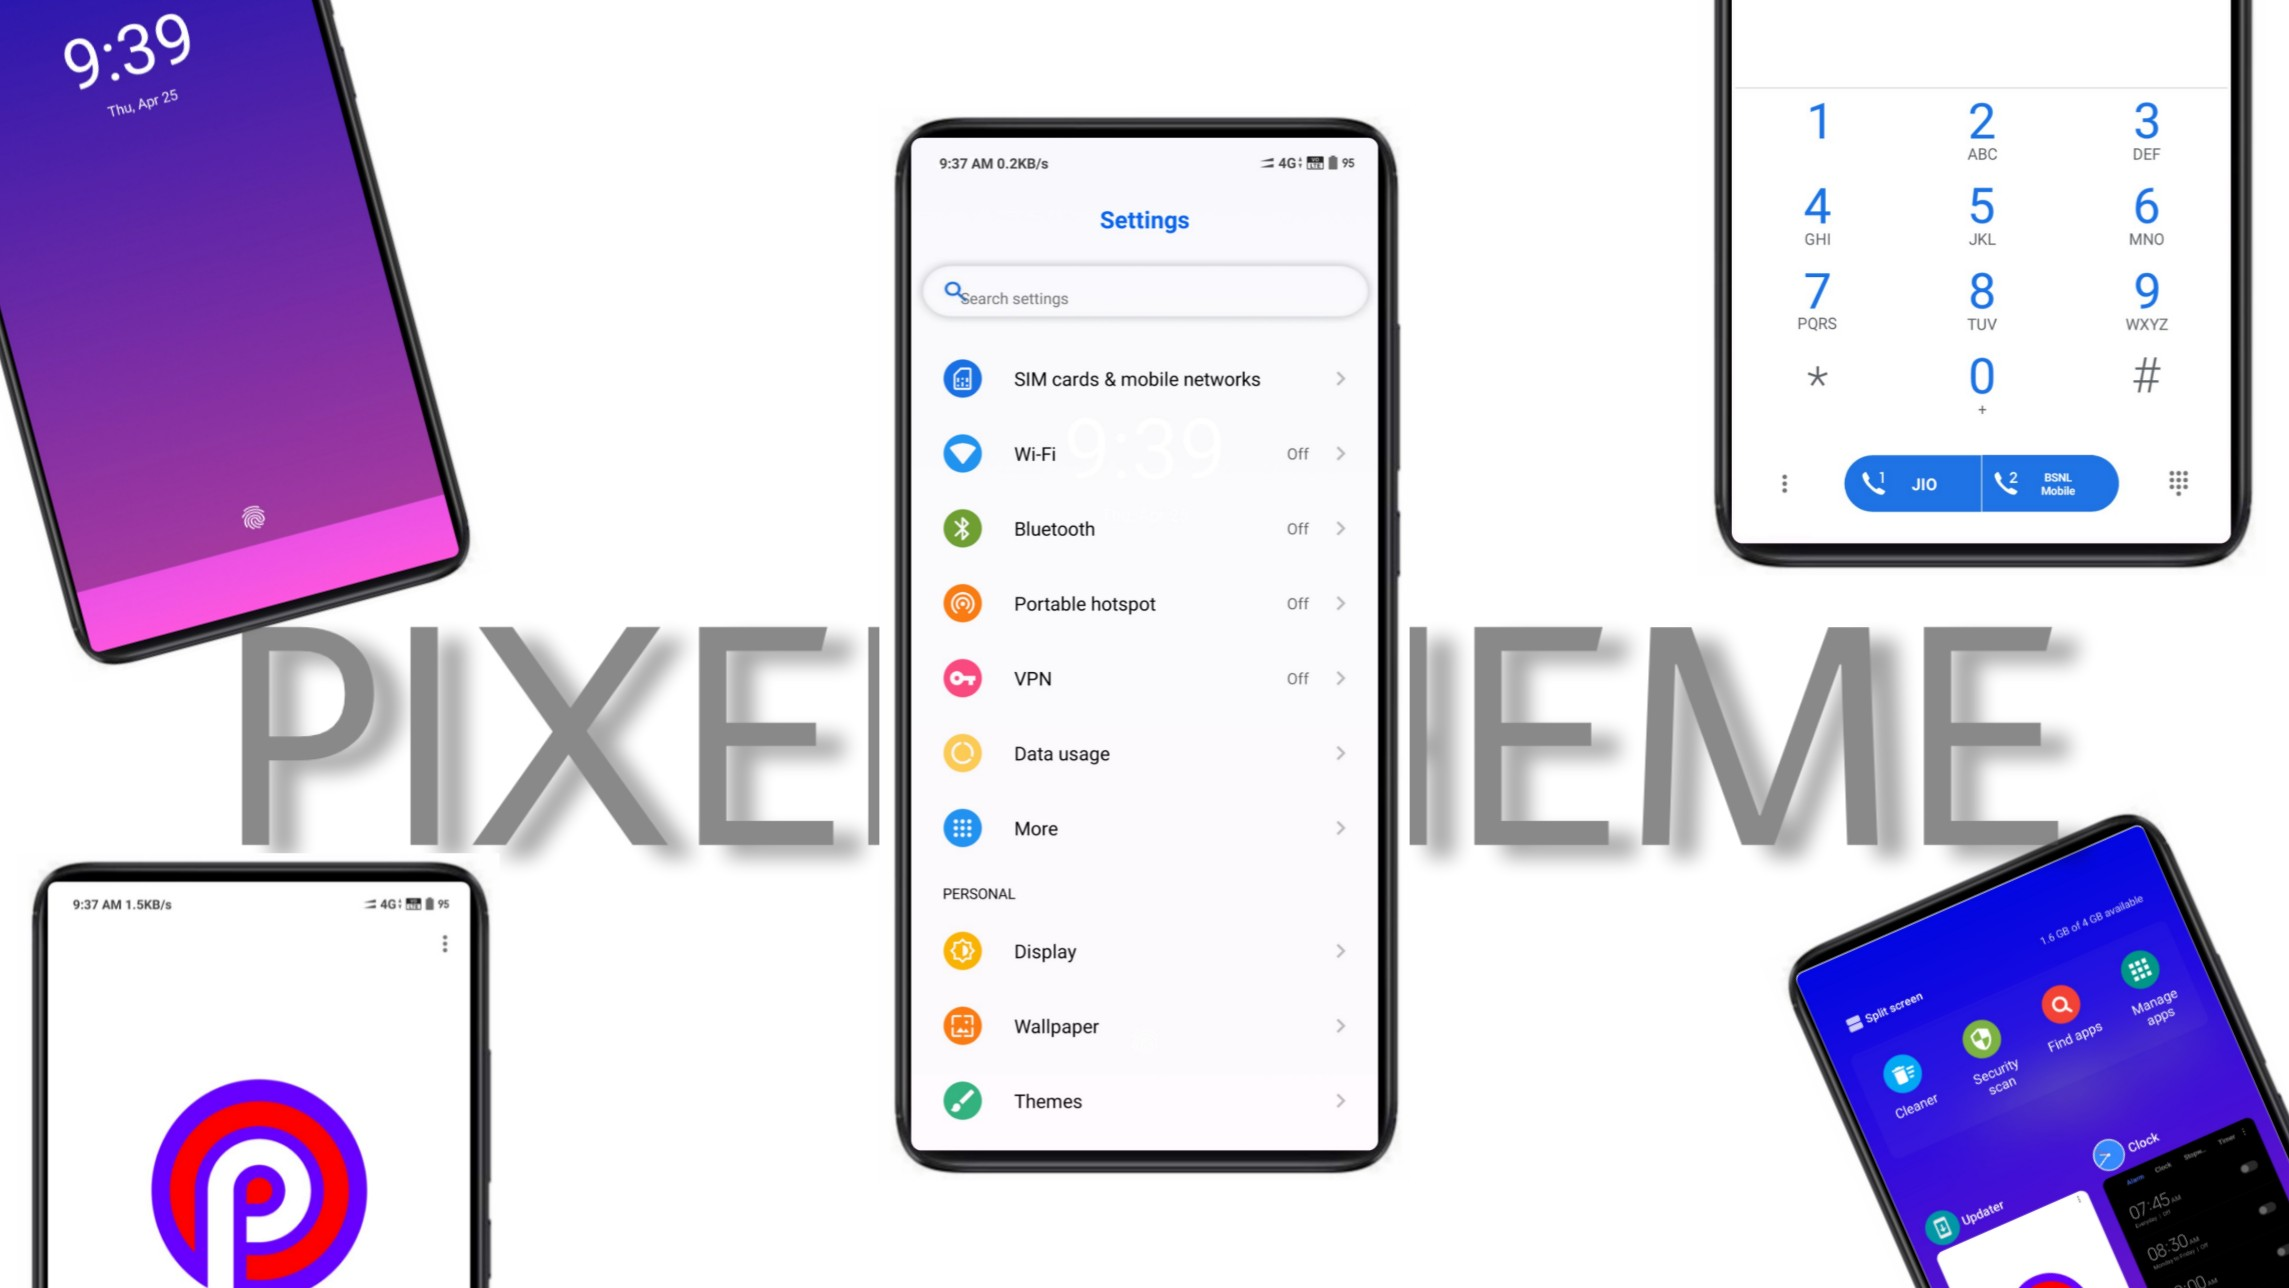 Best Theme for MIUI 10-PIXEL UI - Digital Sphere ONEPLUS 6T